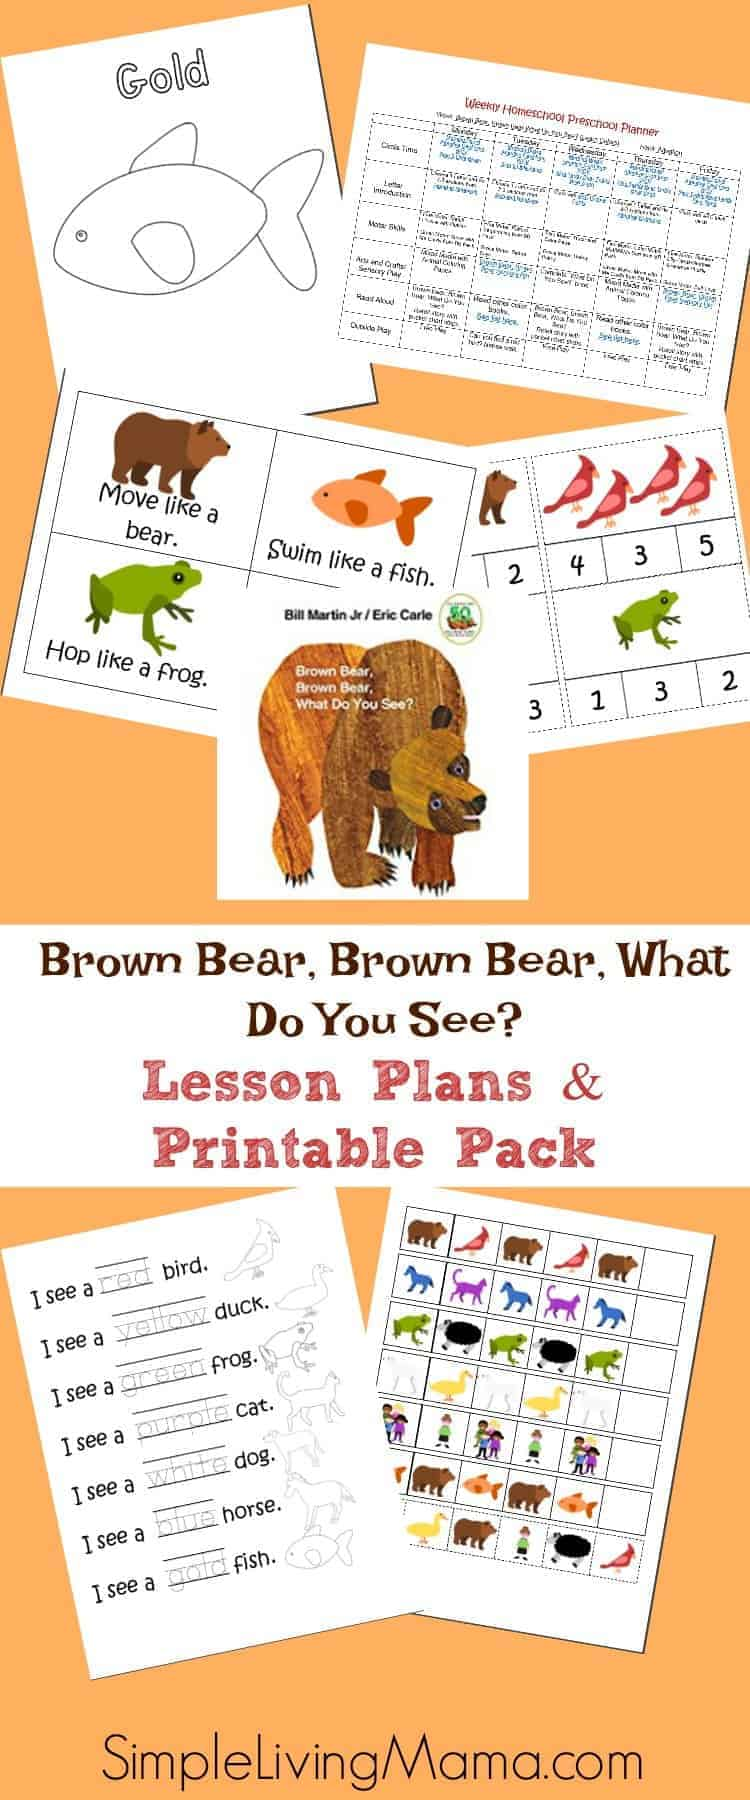 This Brown Bear, Brown Bear What Do You See pack includes a week of lesson plans and printables for preschoolers and kindergartners.